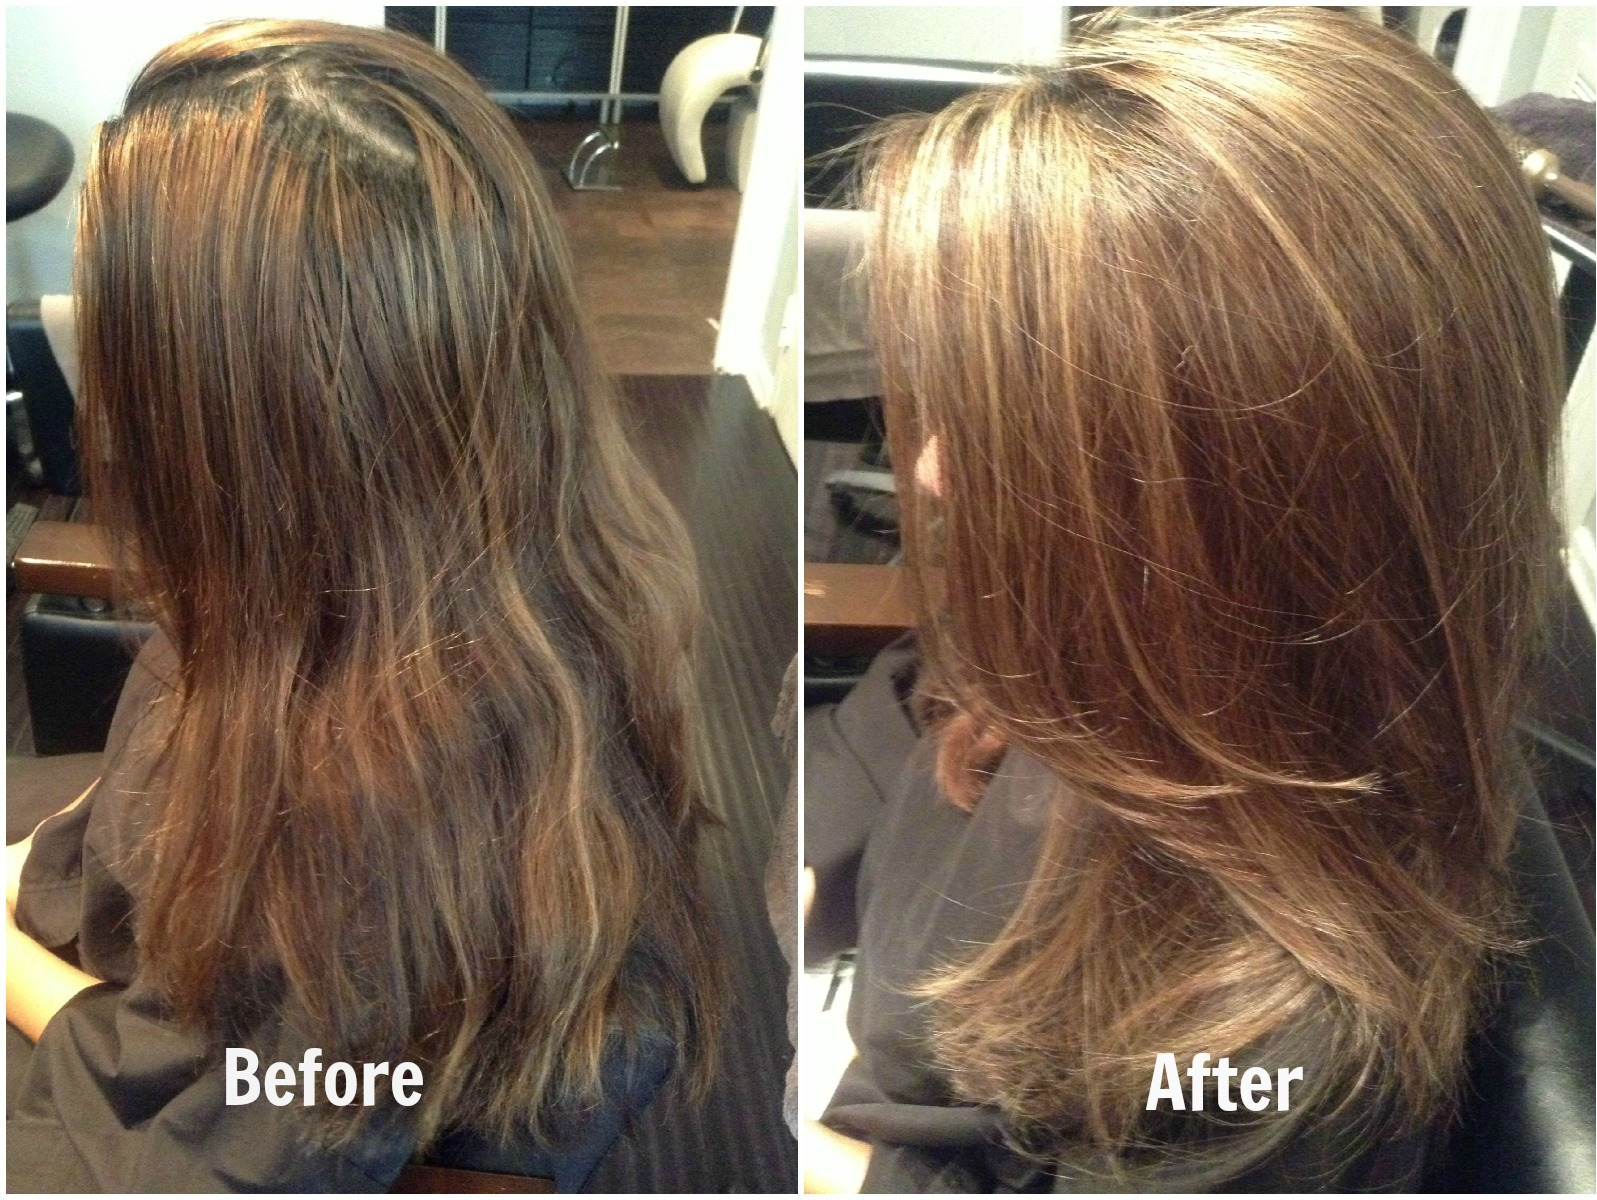 Diana dimensional highlights and lowlights west palm beach hair hair by zaklina is one of the top west palm beach hair salons and has a convenient location in the heart of downtown in an upscale boutique loft in the pmusecretfo Images